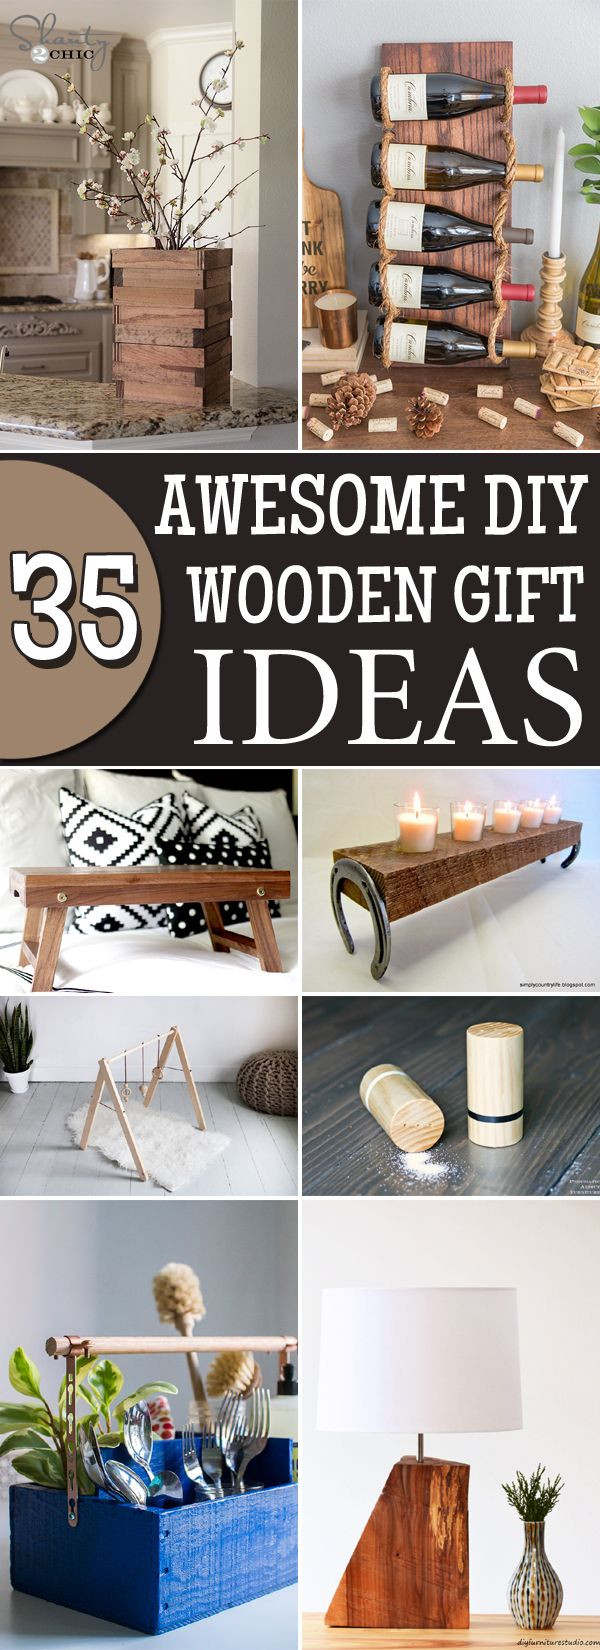 Best ideas about Wood Worker Gift Ideas . Save or Pin 35 Awesome DIY Wooden Gift Ideas That Everyone Will Love Now.